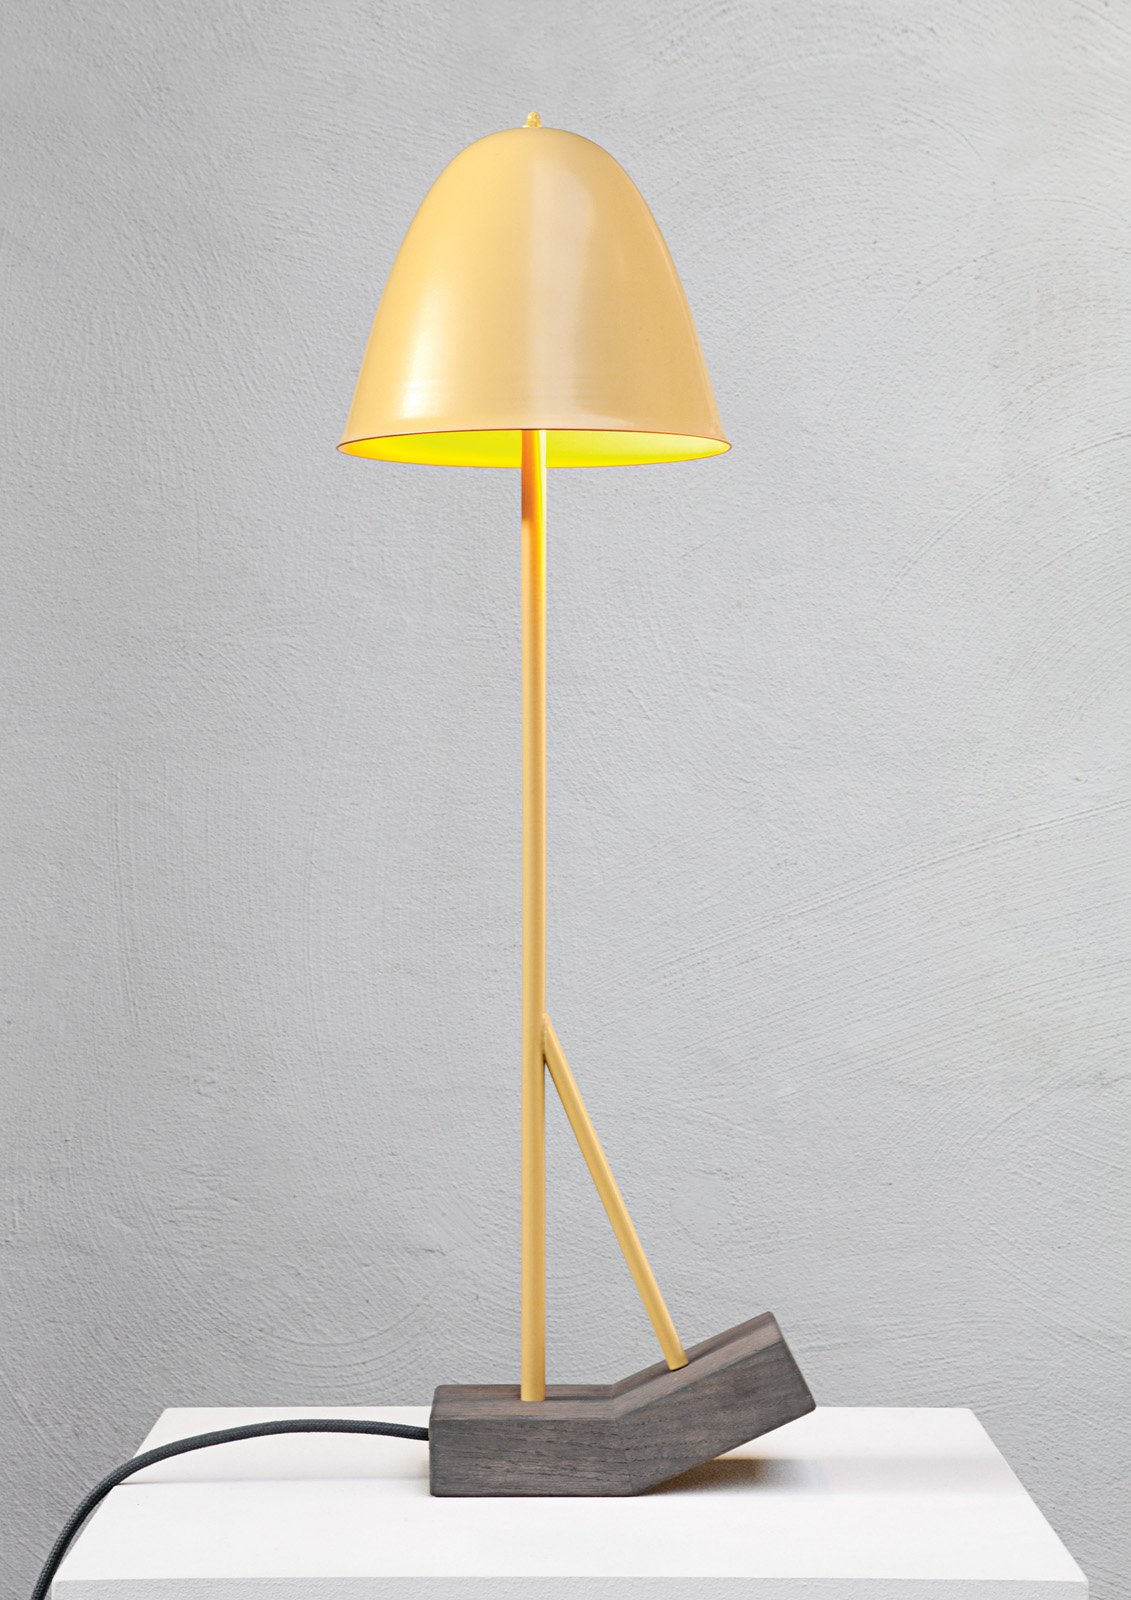 """Pilu by German designer Leoni Werle is a table and a floor lamp in one. An oddly shaped oak base allows the lamp to toggle between two positions. The connection between shade and base is jointed, allowing the beam to be directed downwards even with the lamp is in the angled position.  Search """"f k a table lamp"""" from Emerging Design Talent at imm Cologne"""